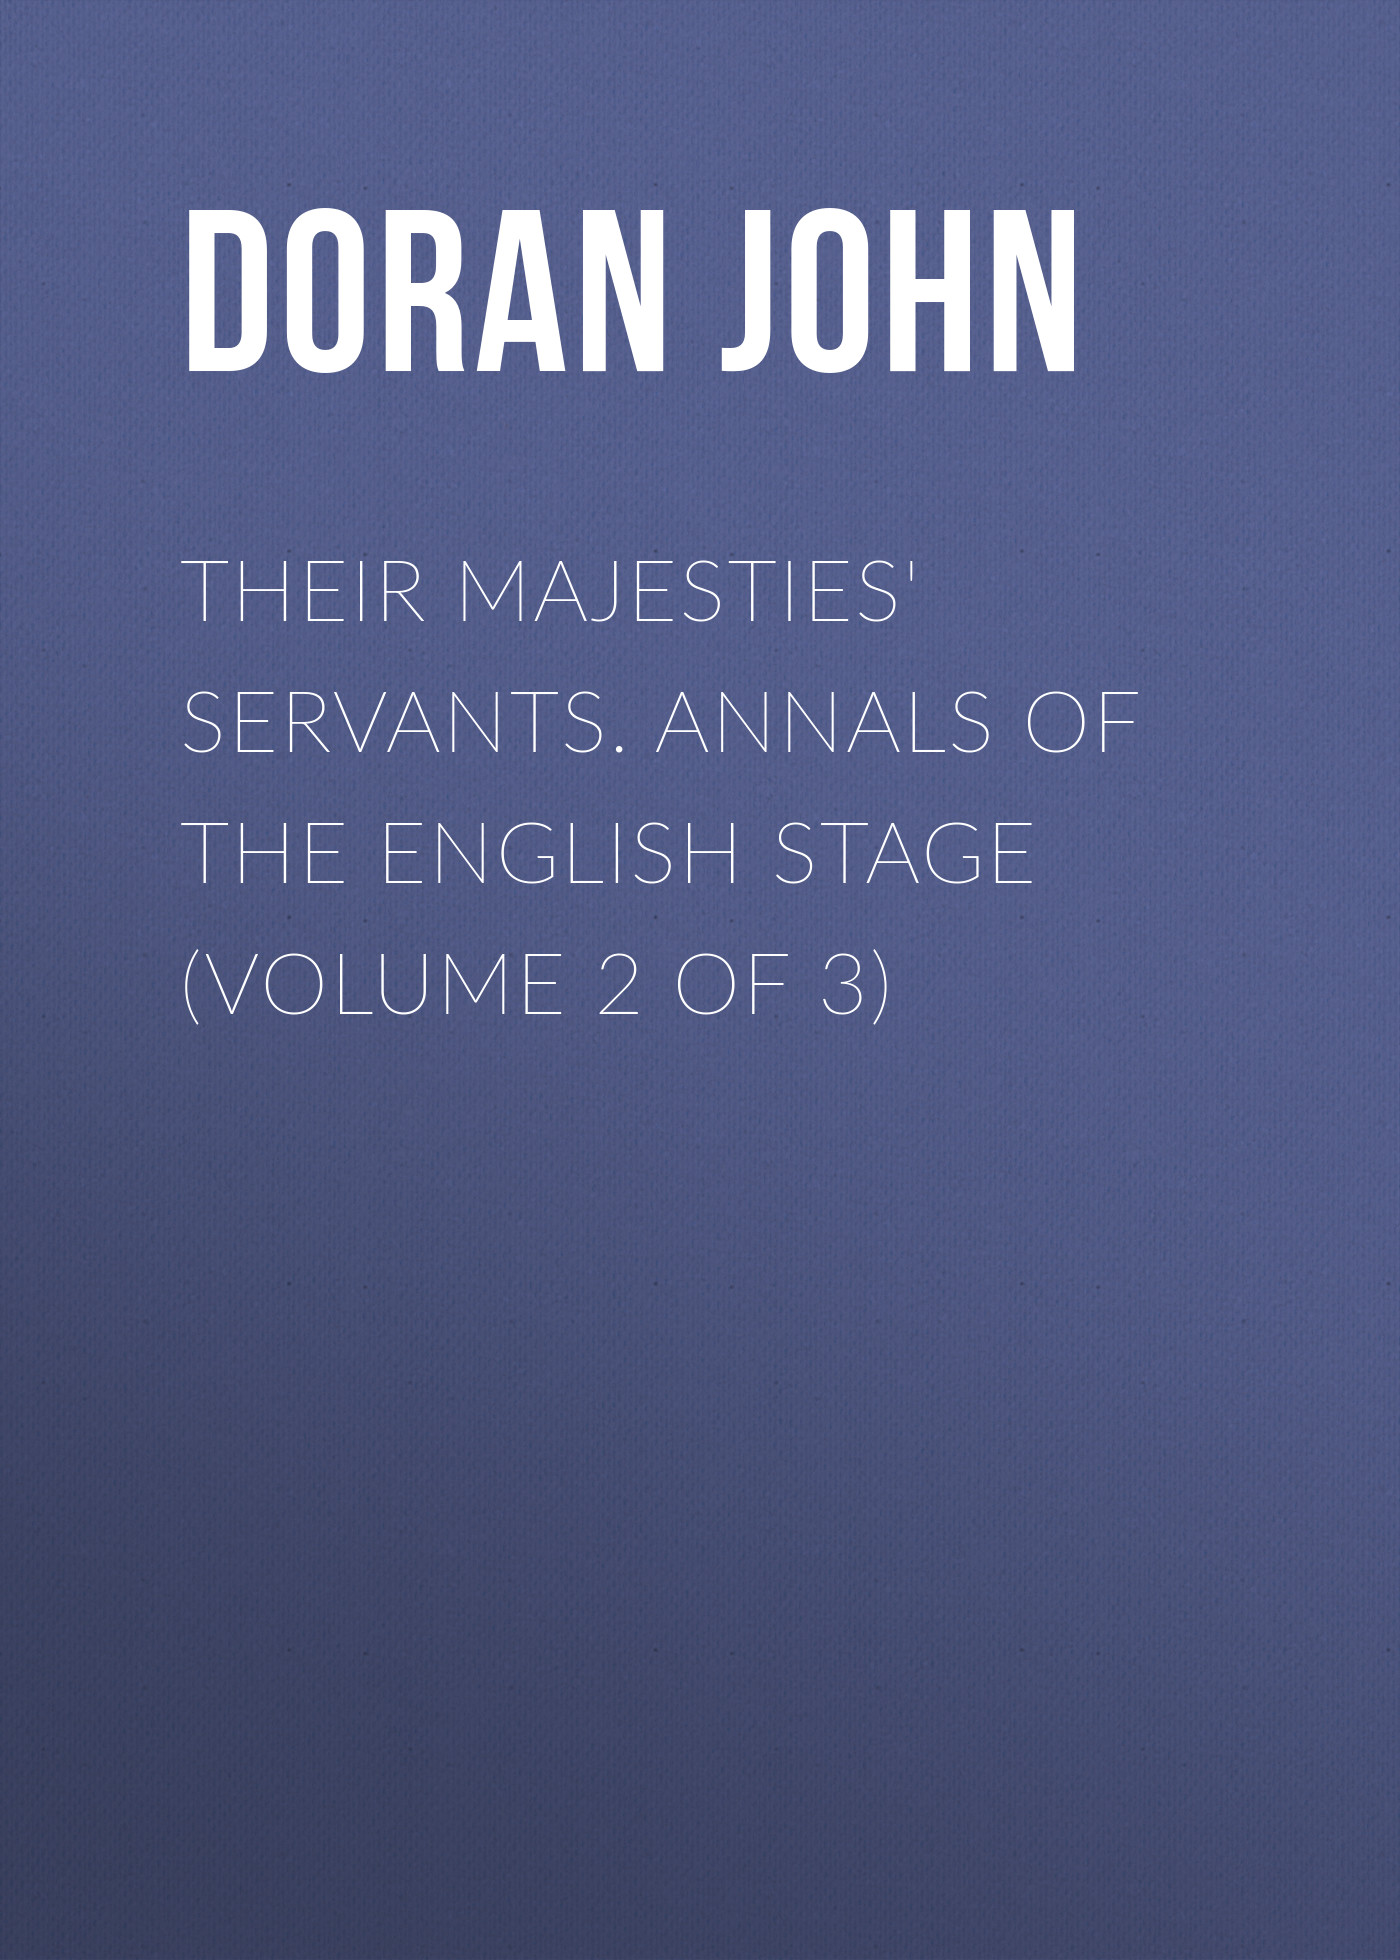 Doran John Their Majesties' Servants. Annals of the English Stage (Volume 2 of 3) 3 stage prefilter ionized antioxidant water filter replacement